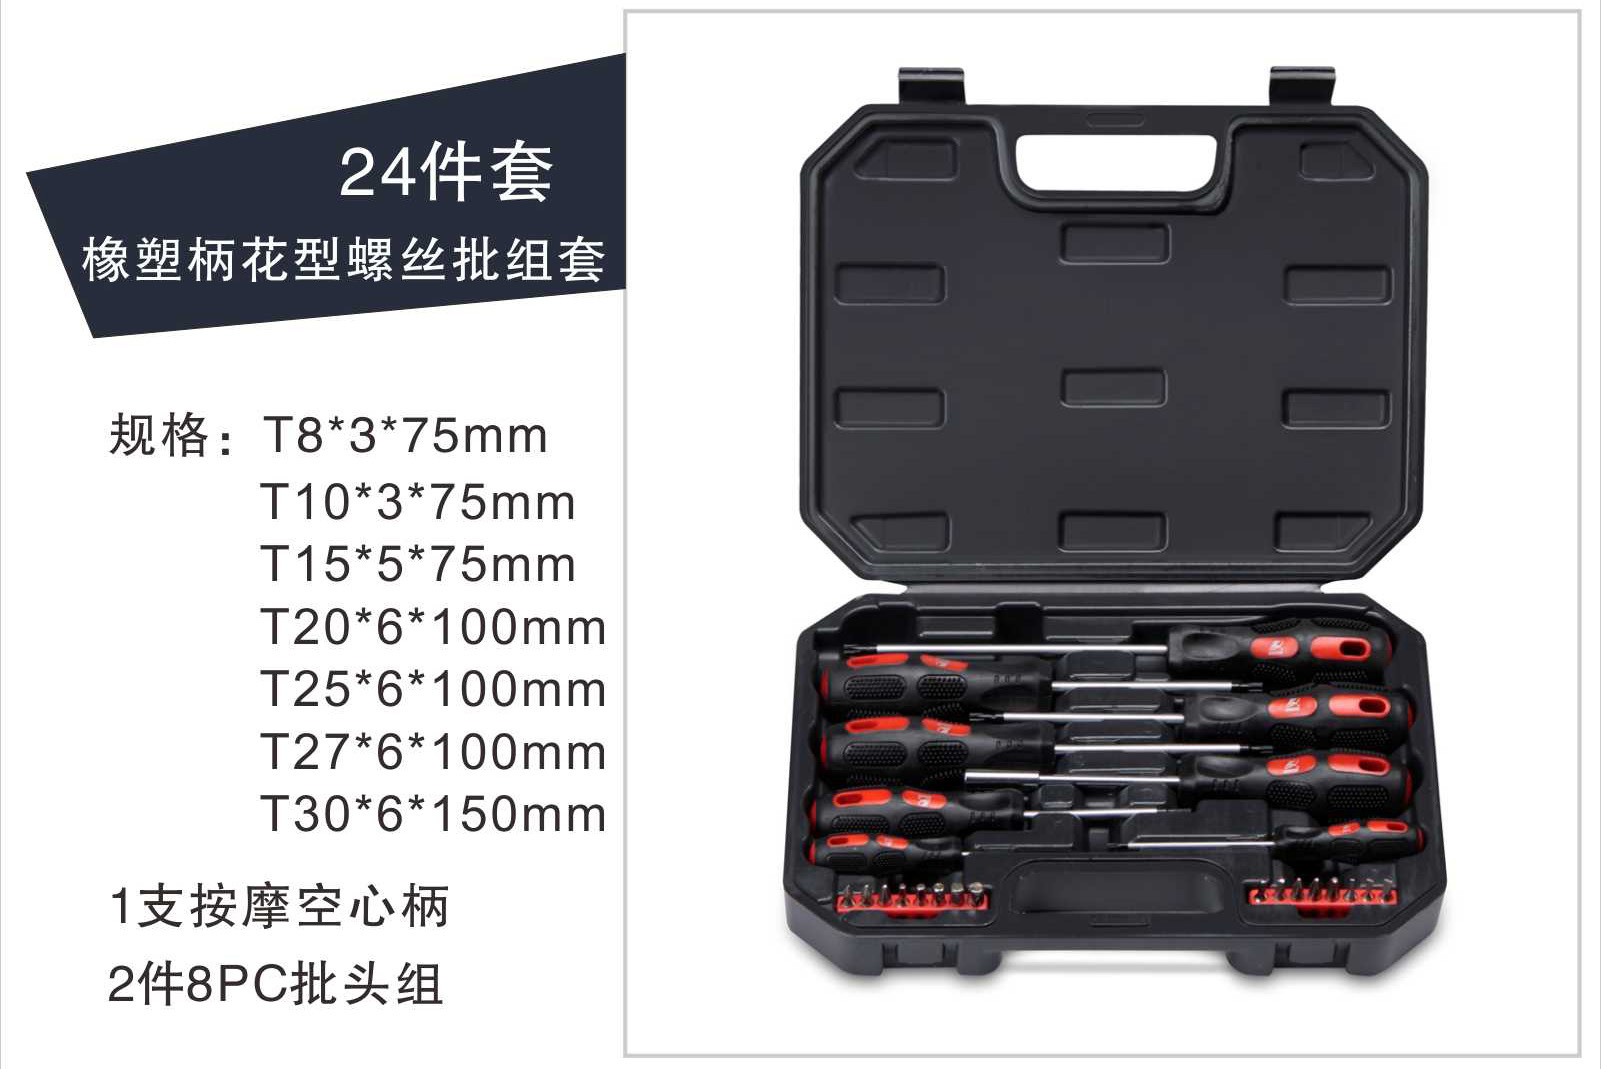 The package stamps button suit 8 pieces /24 rubber handle flower type screwdriver set Meihua star screwdriver tool